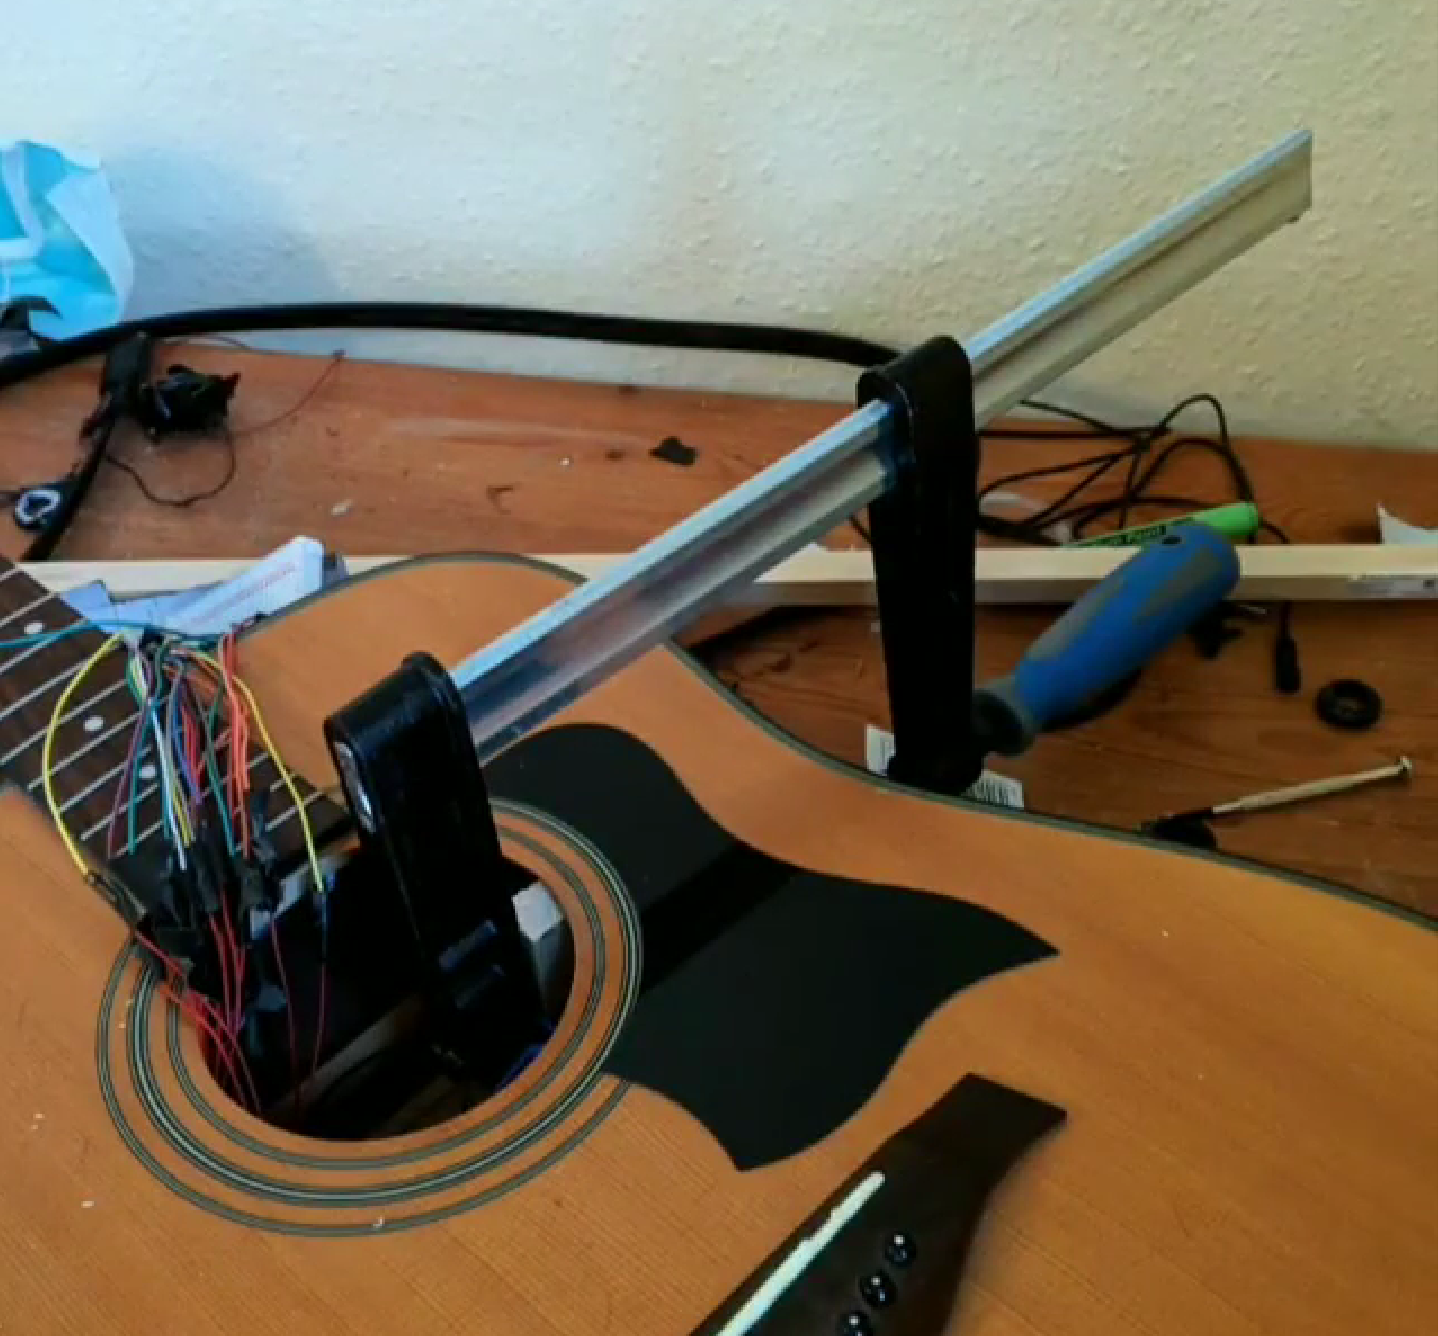 Chord Assist: Building an accessible smart guitar for the